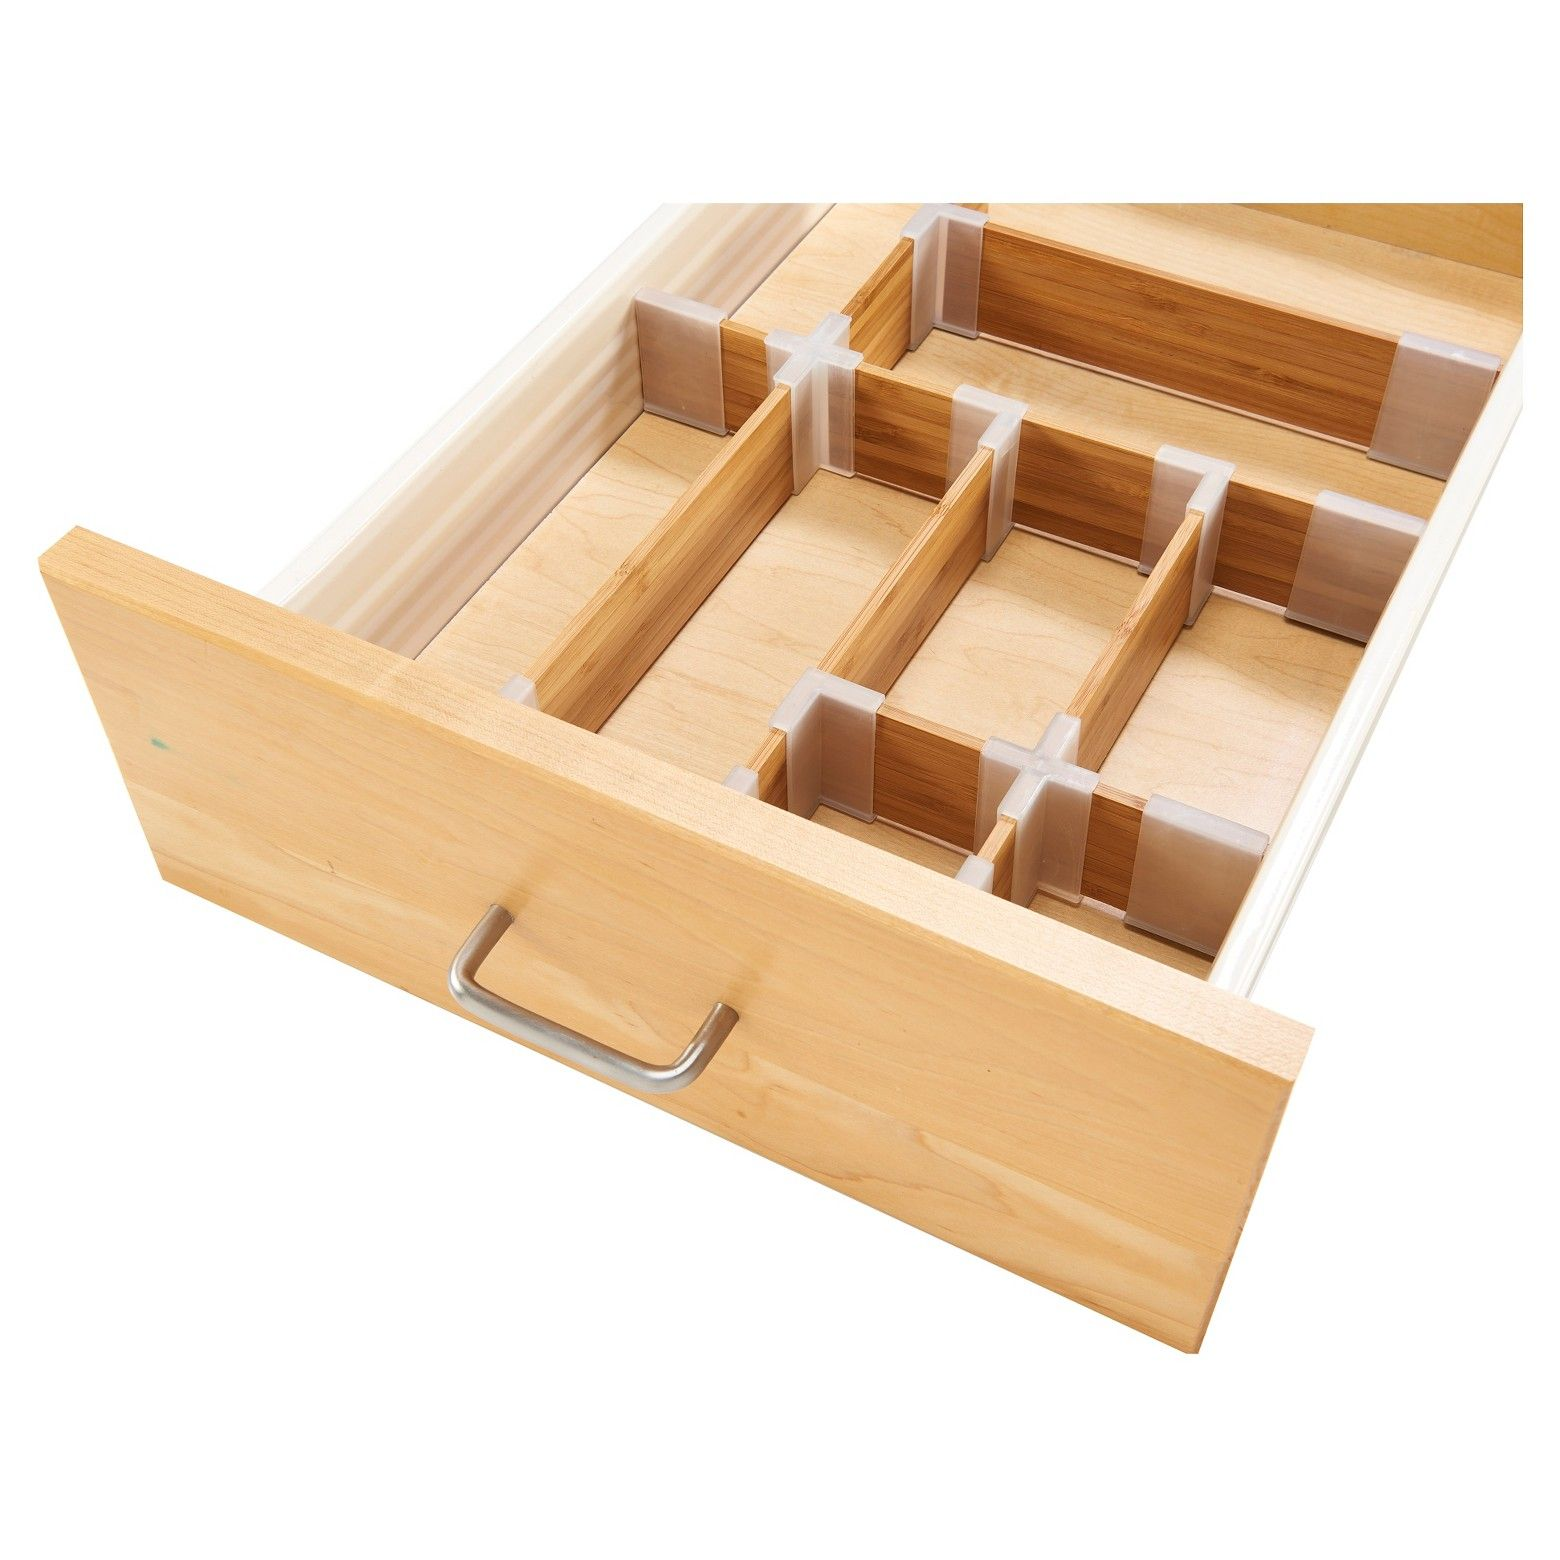 Sink caddy drawer organization kit bamboo green threshold the threshold bamboo drawer organizer provides a customizable build it yourself system for organizing solutioingenieria Image collections